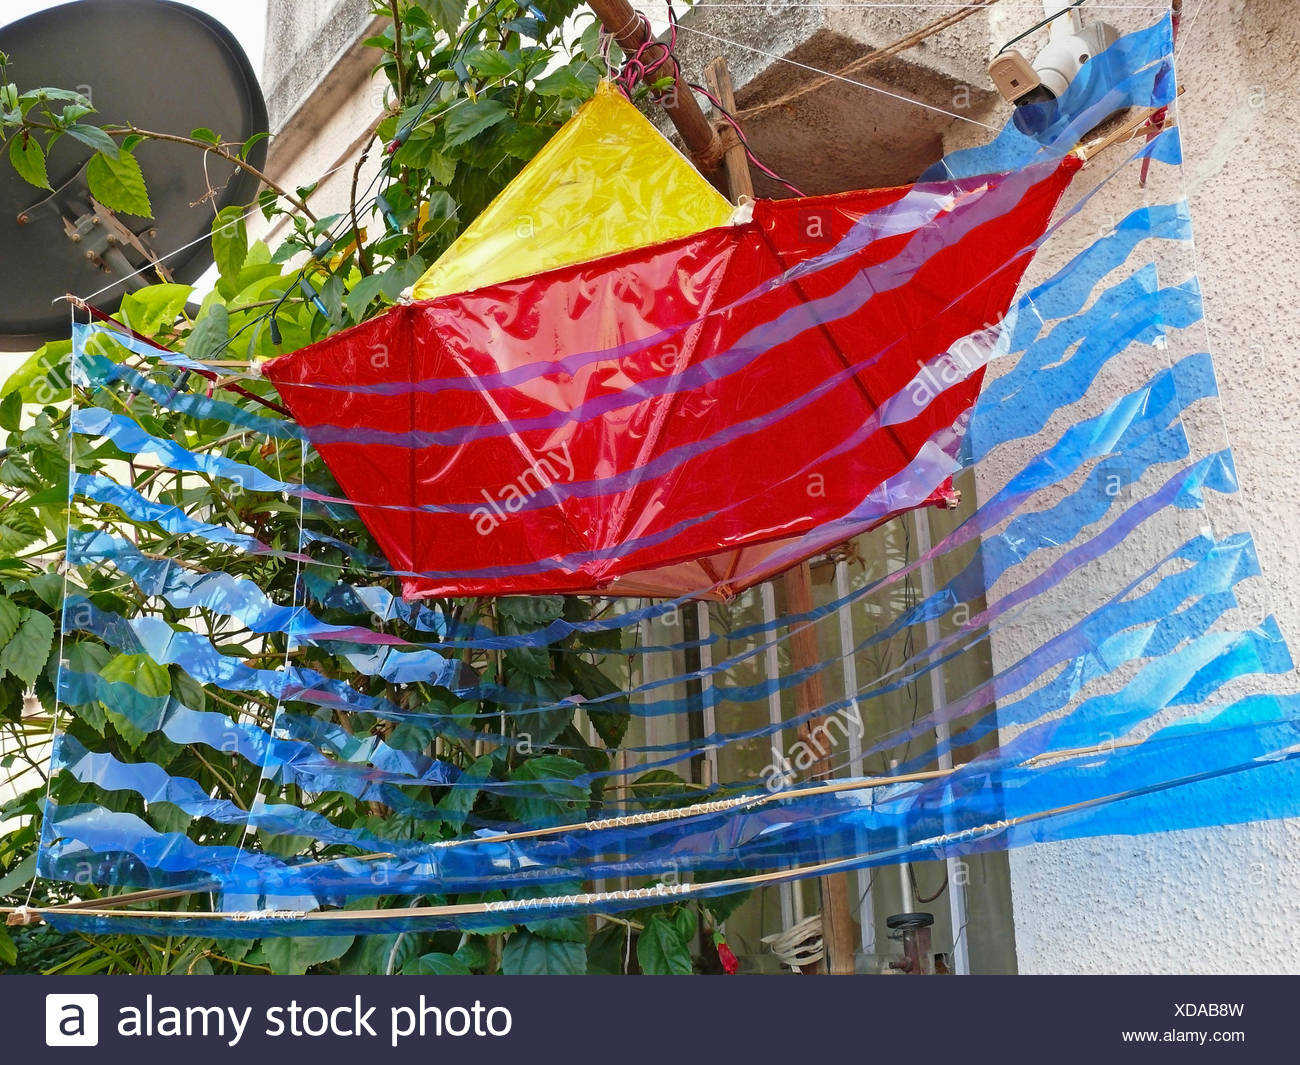 Boat shaped Lantern - Stock Image